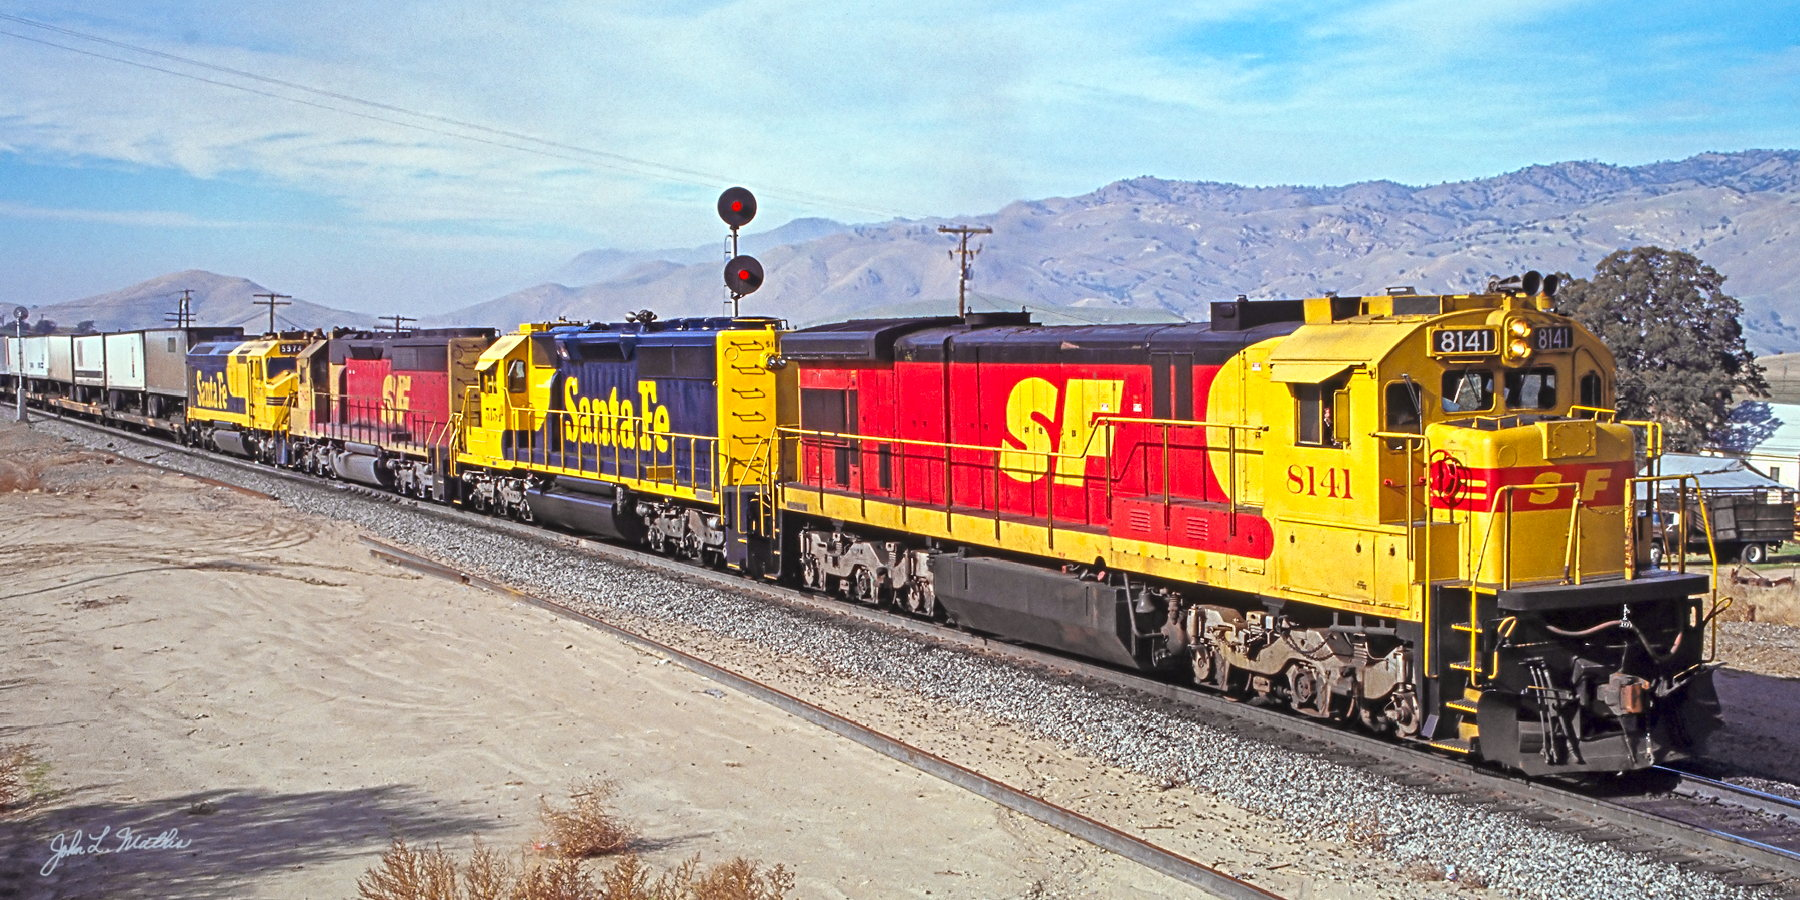 ATSF C30-7 8141 eastbound at Bealville, CA in December, 1988.